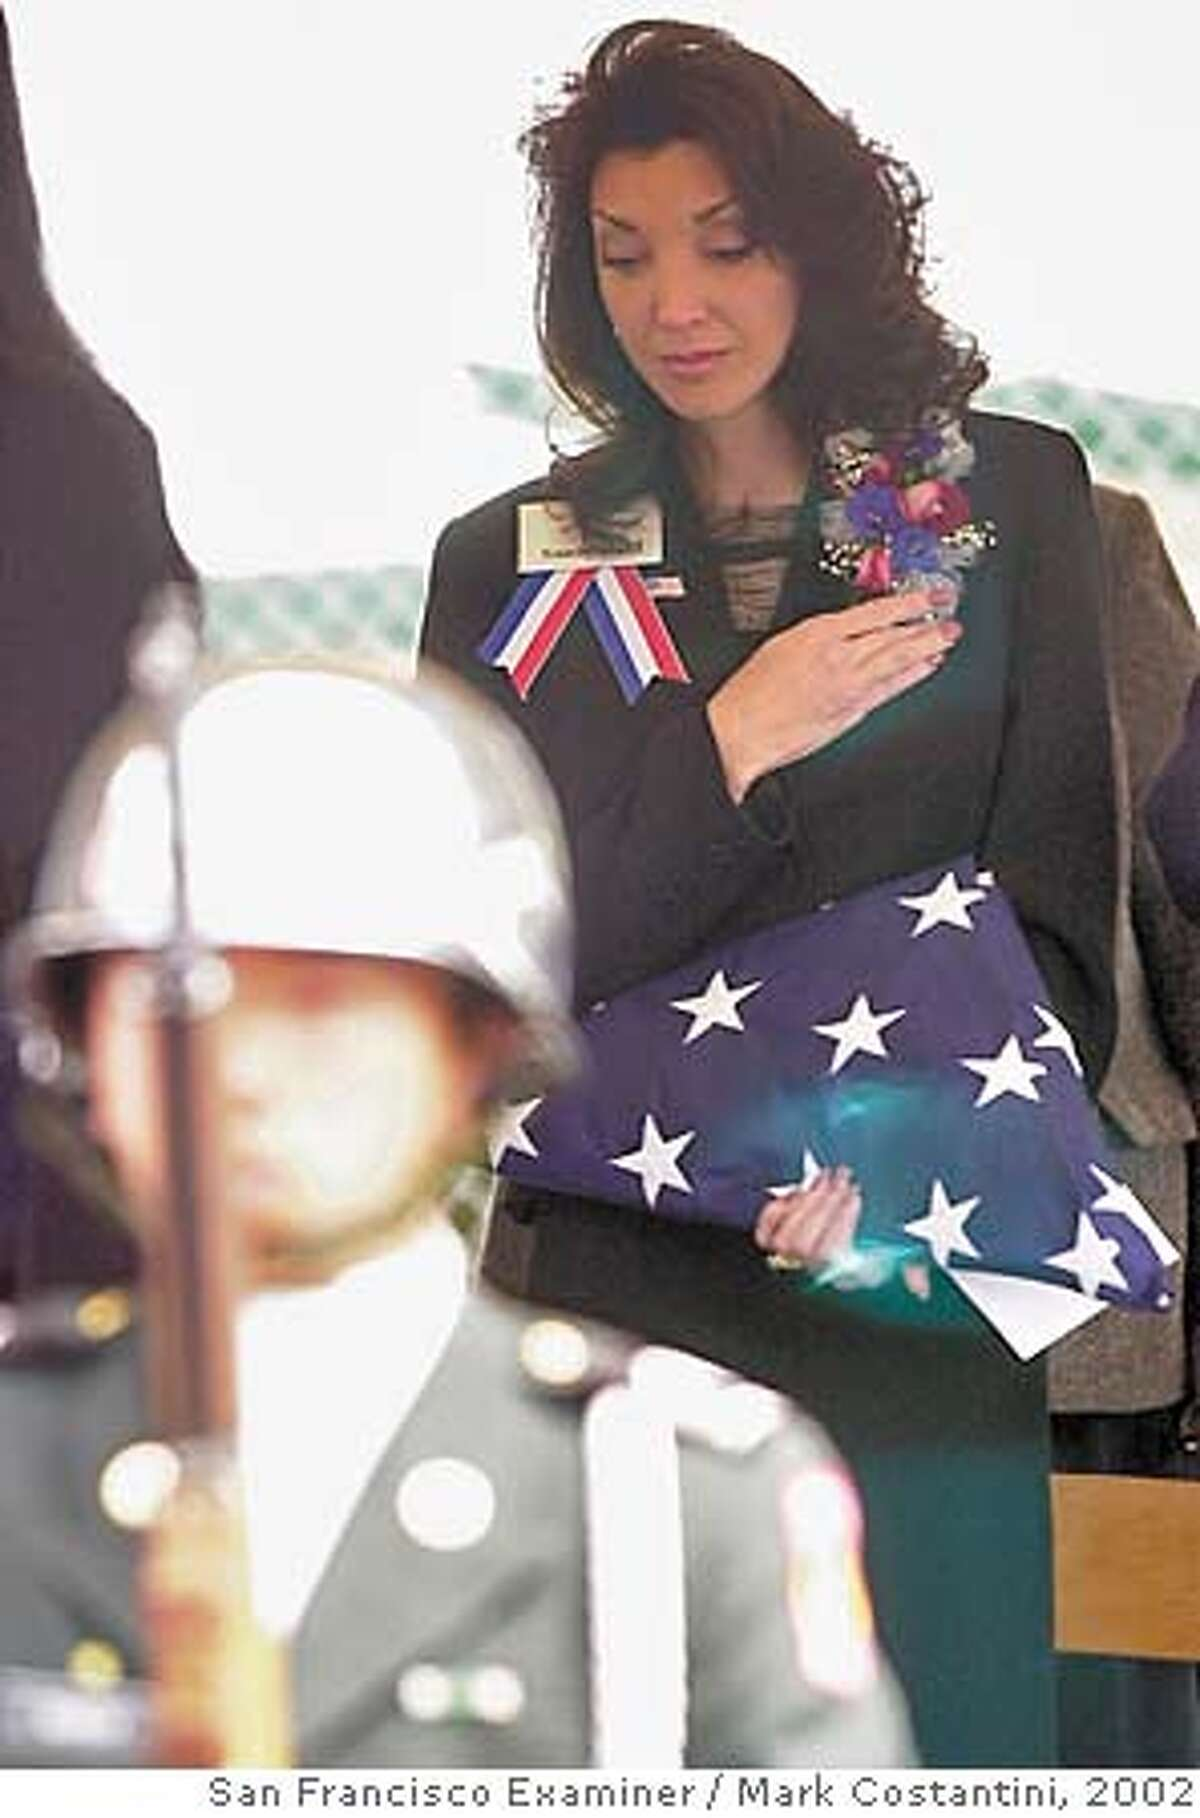 Sandy Dahl, widow of Jason Dahl, one of the pilots of United Airlines Flight 93, which crashed in Pennsylvania on Sept. 11, holds her hand over her heart during a ceremony held to change the name of Hillsdale Elementary School to Capt. Jason M. Dahl Elementary School Monday, March 25, 2002, in San Jose, Calif. Jason was a student at the school. (AP Photo/The San Francisco Examiner, Mark Costantini) CAT NORTHERN CA MANDATORY CREDIT PHOTOGRAPHER AND CHRONICLE